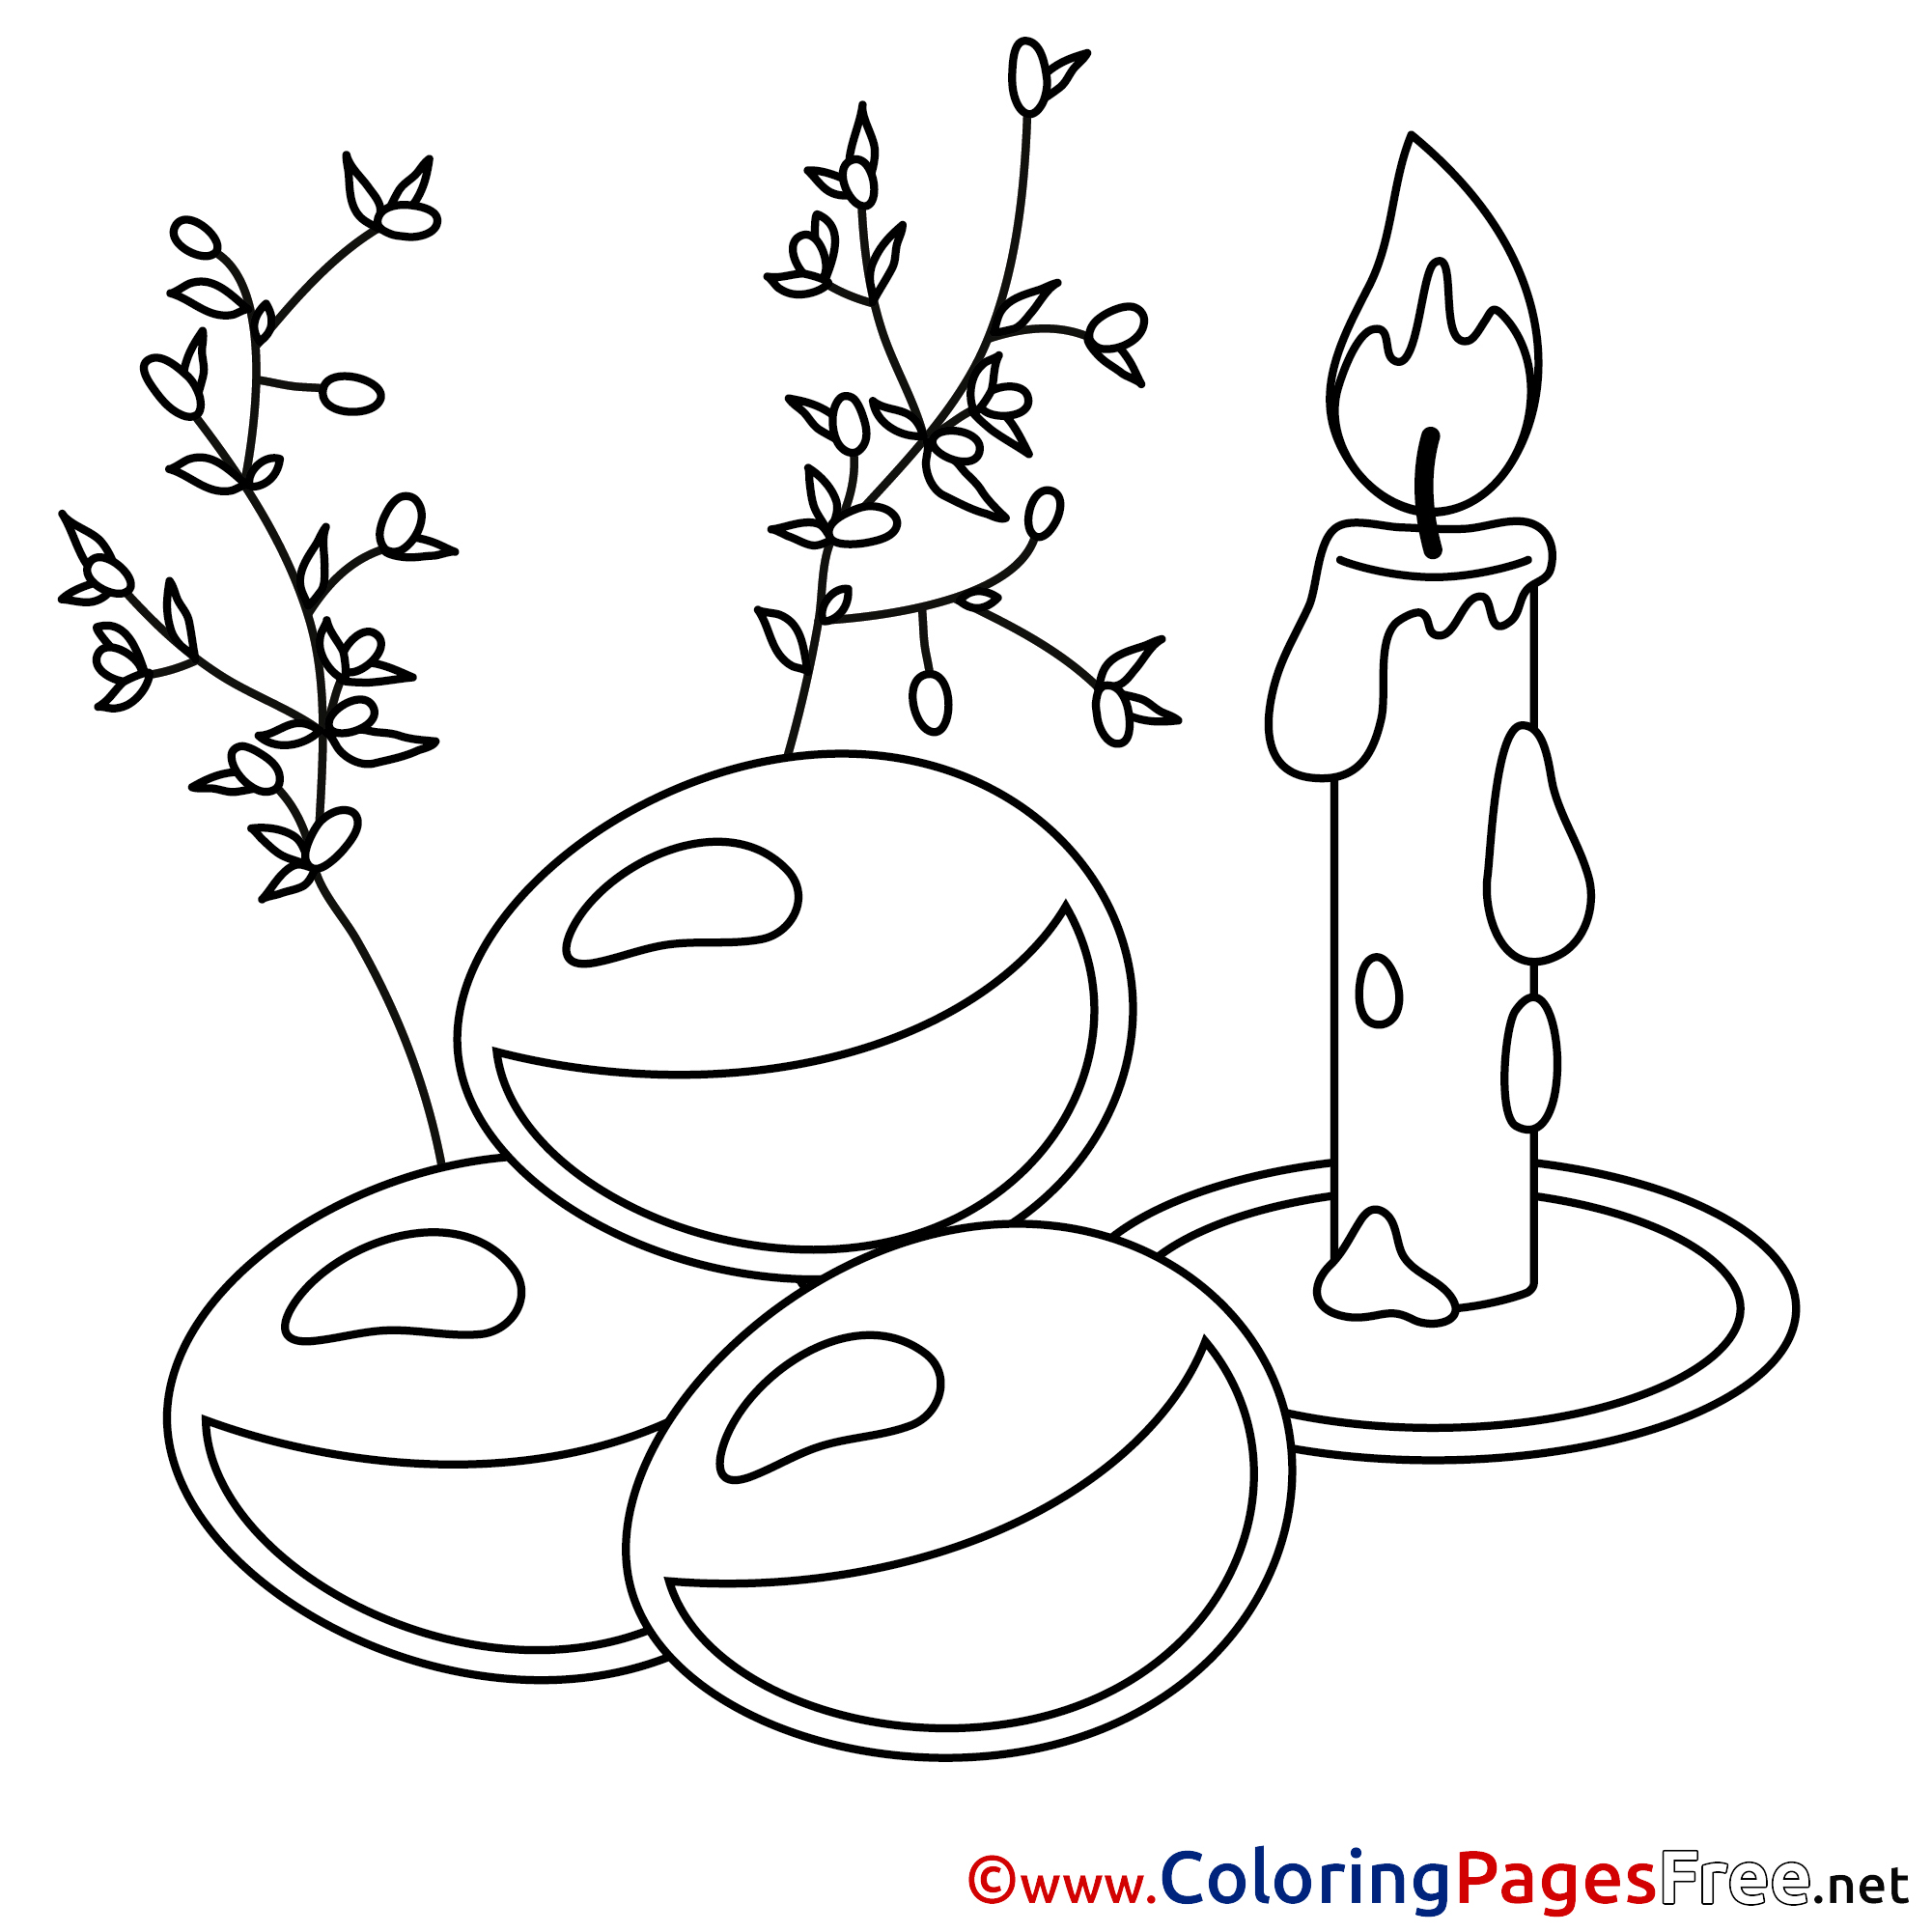 coloring pages of easter candles - photo#41